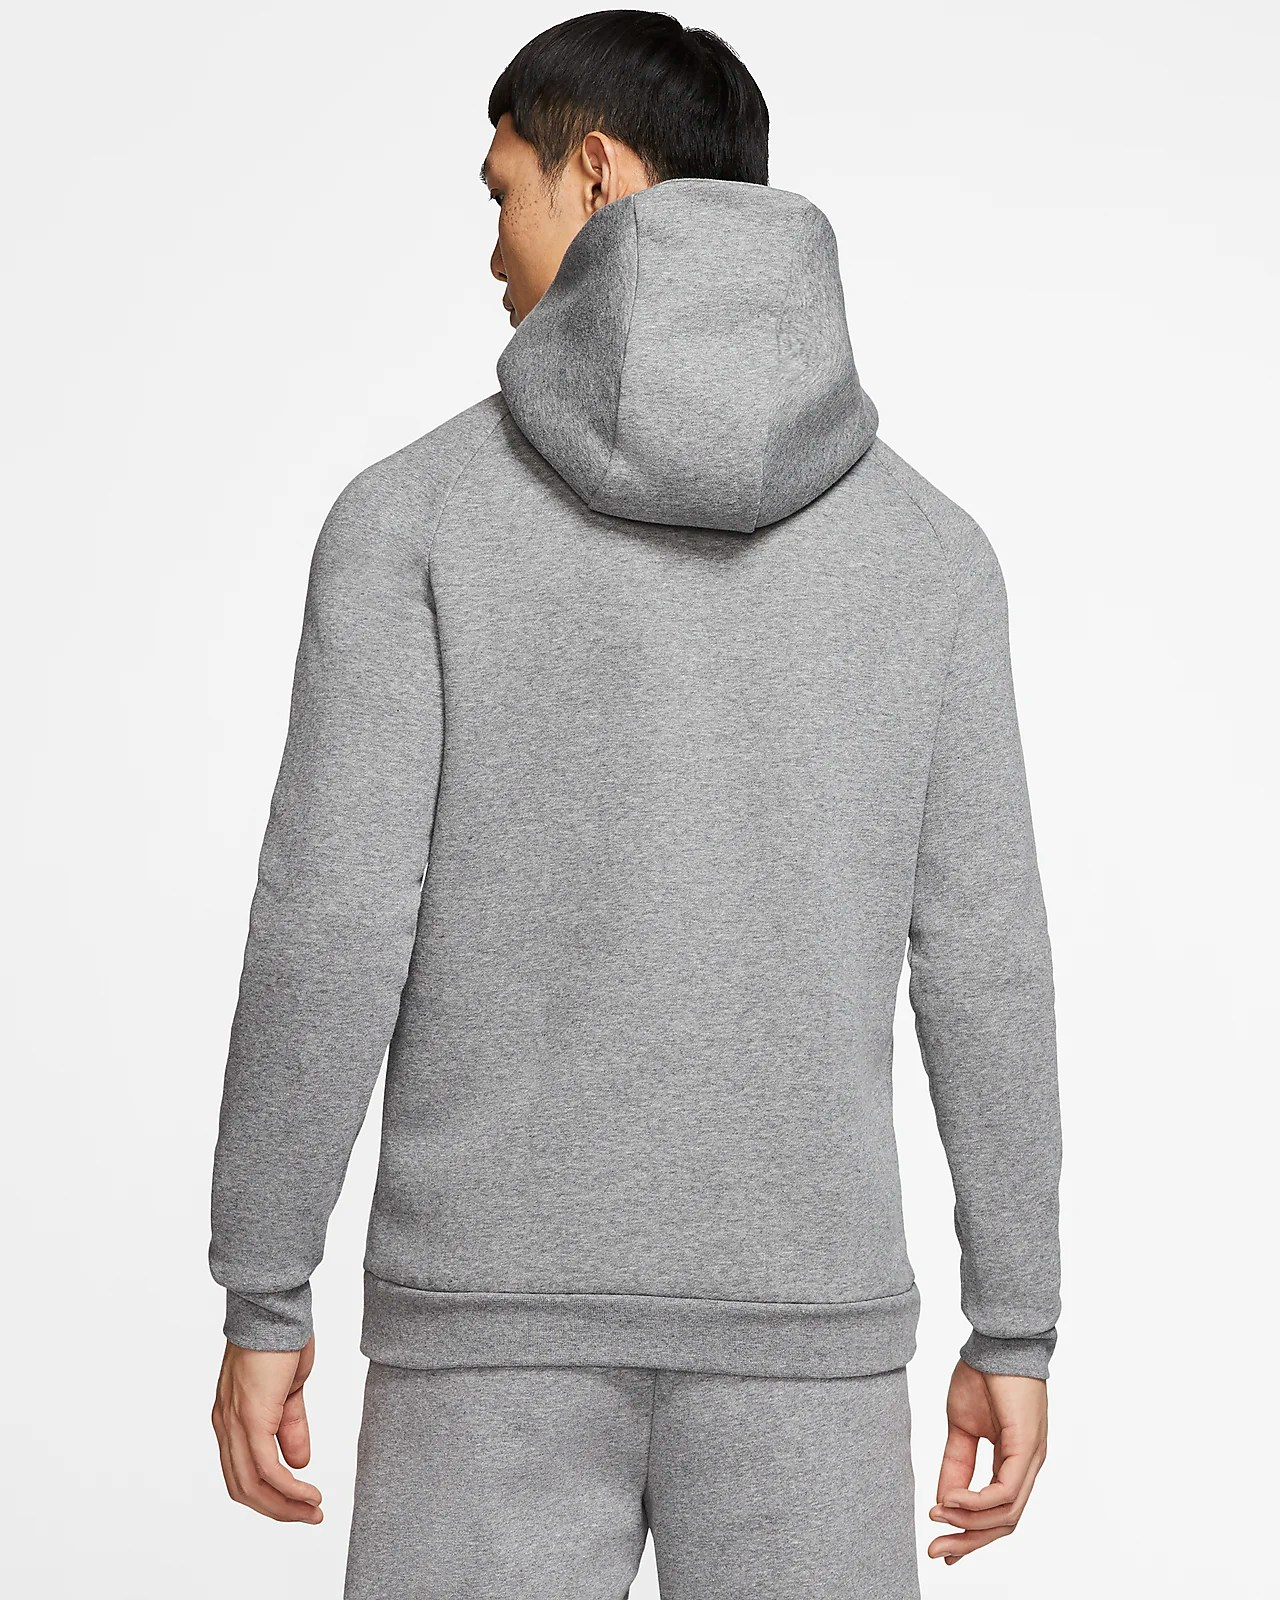 Nike Hoodie Carbon Heather Jordan Jumpman Logo Men S Fleece Pullover Hoodie